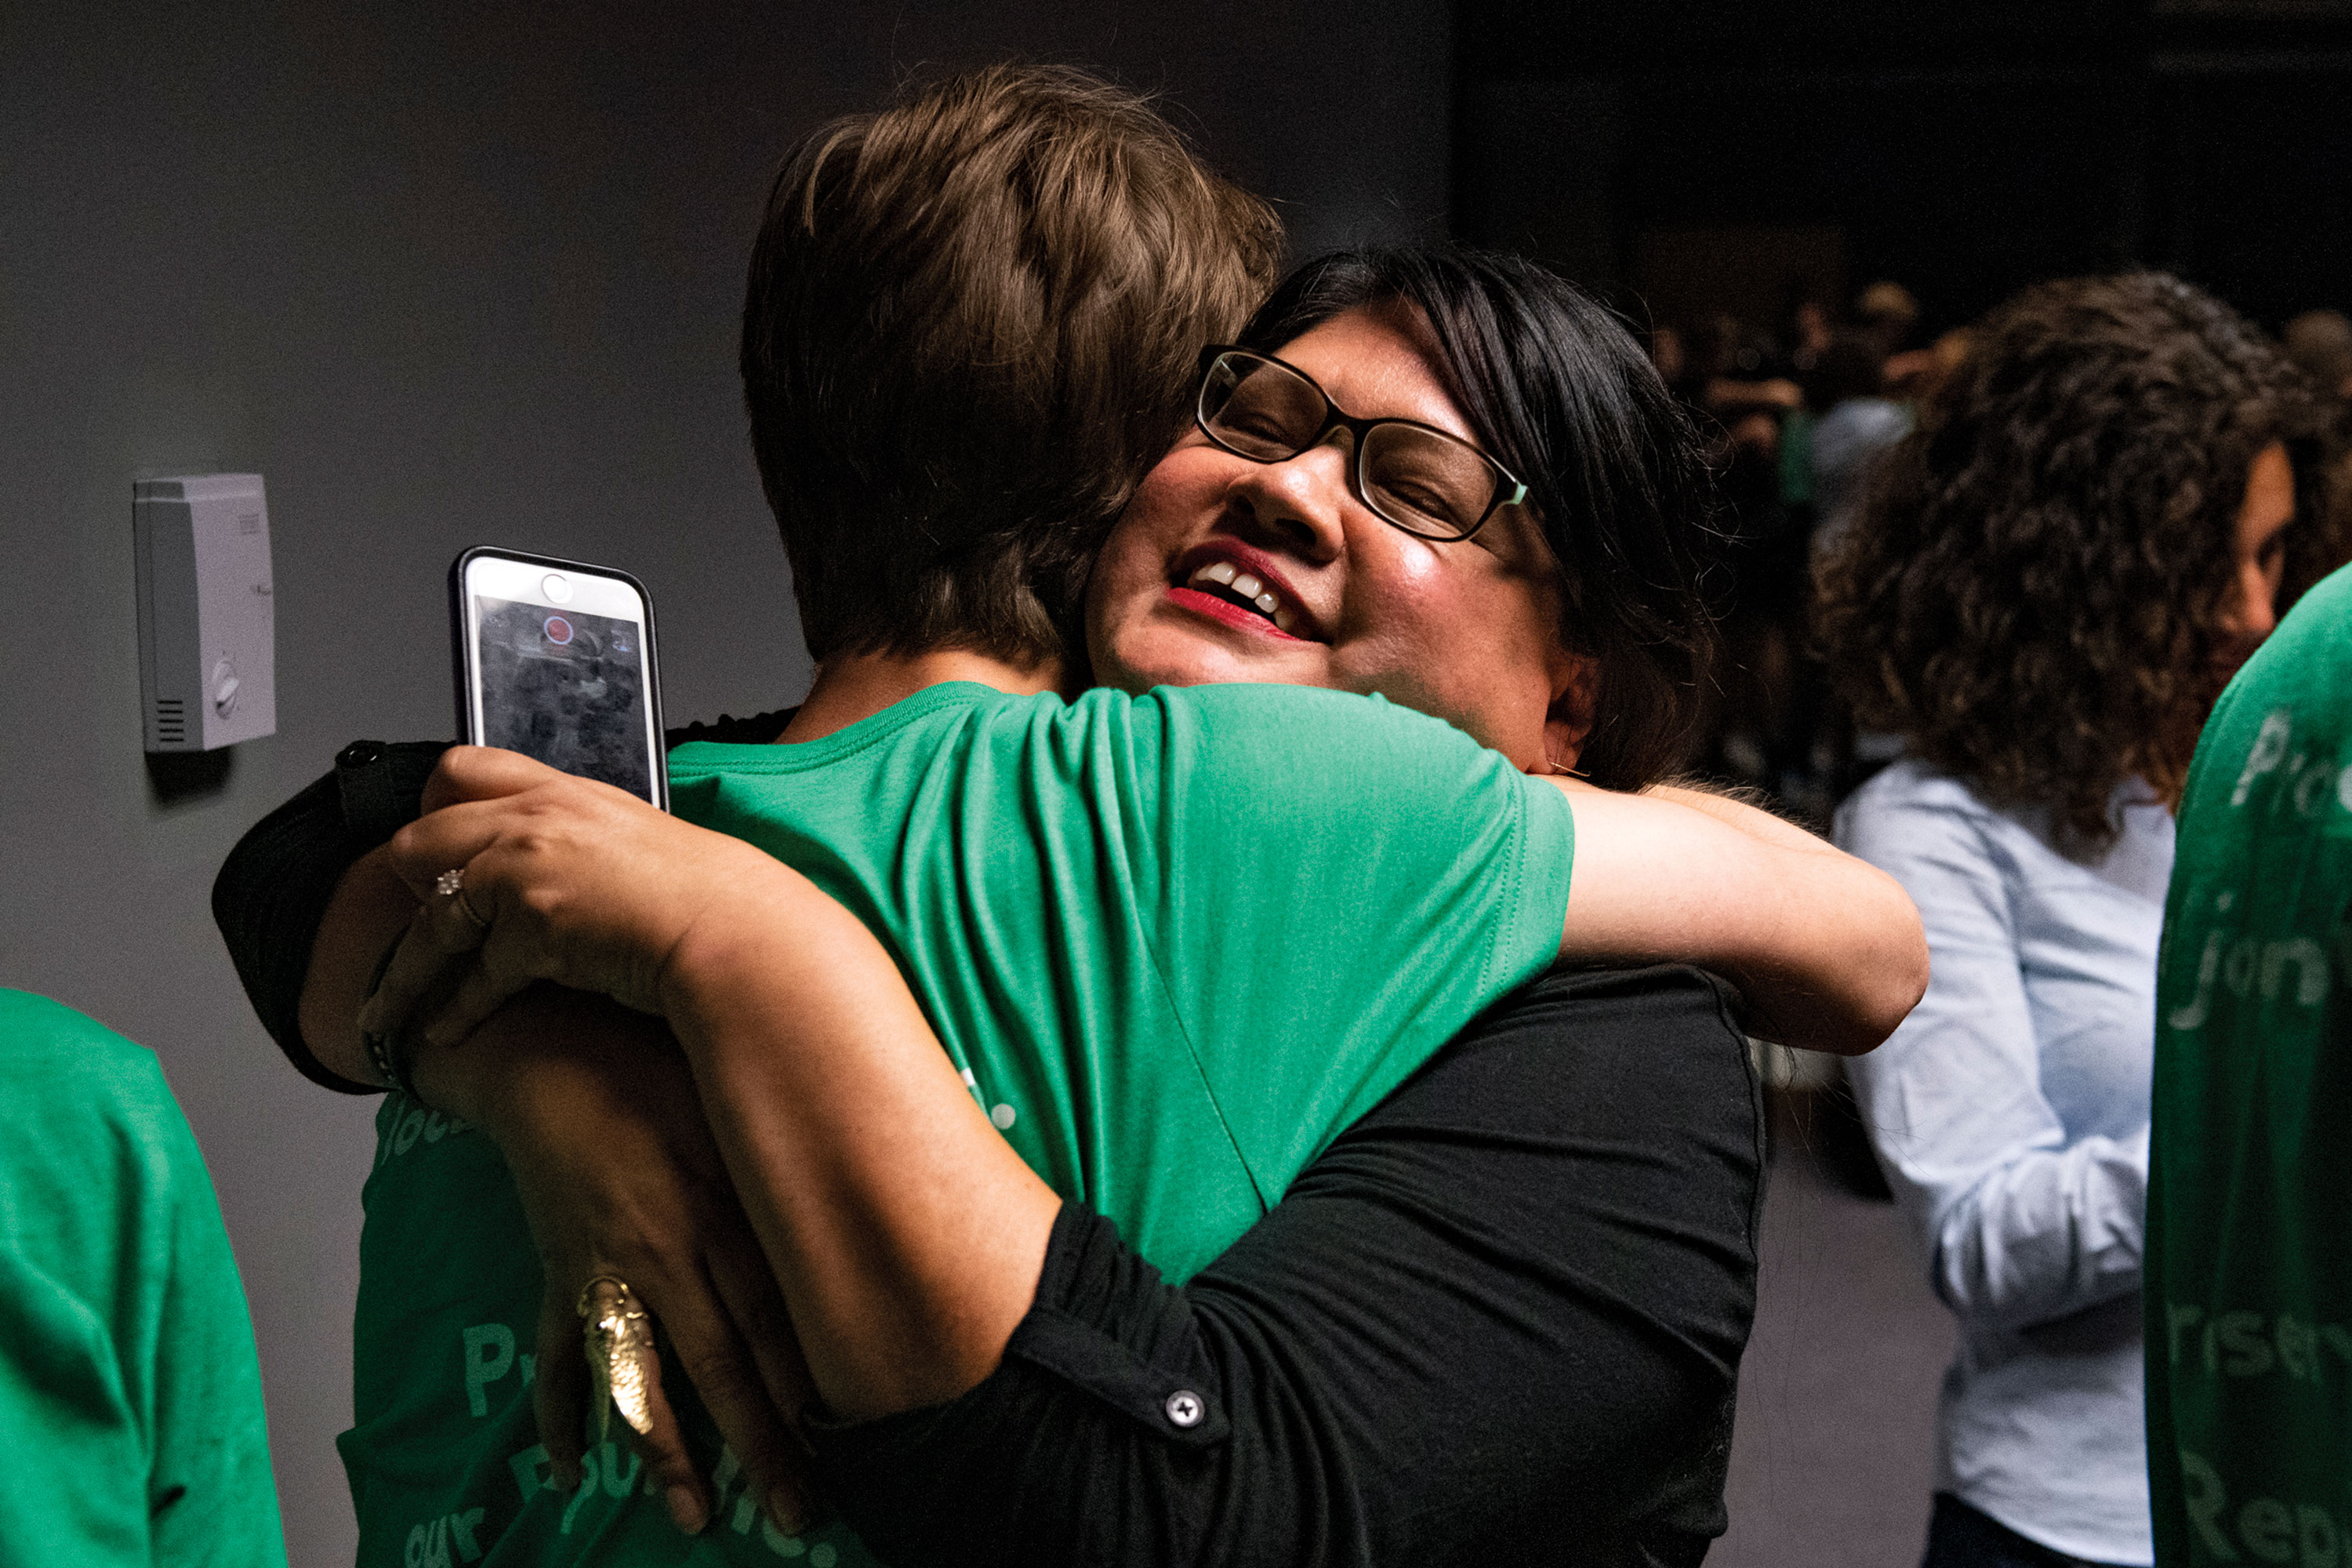 Scenes from the night of the unionization vote on October 10; Photos by Ben Moffat